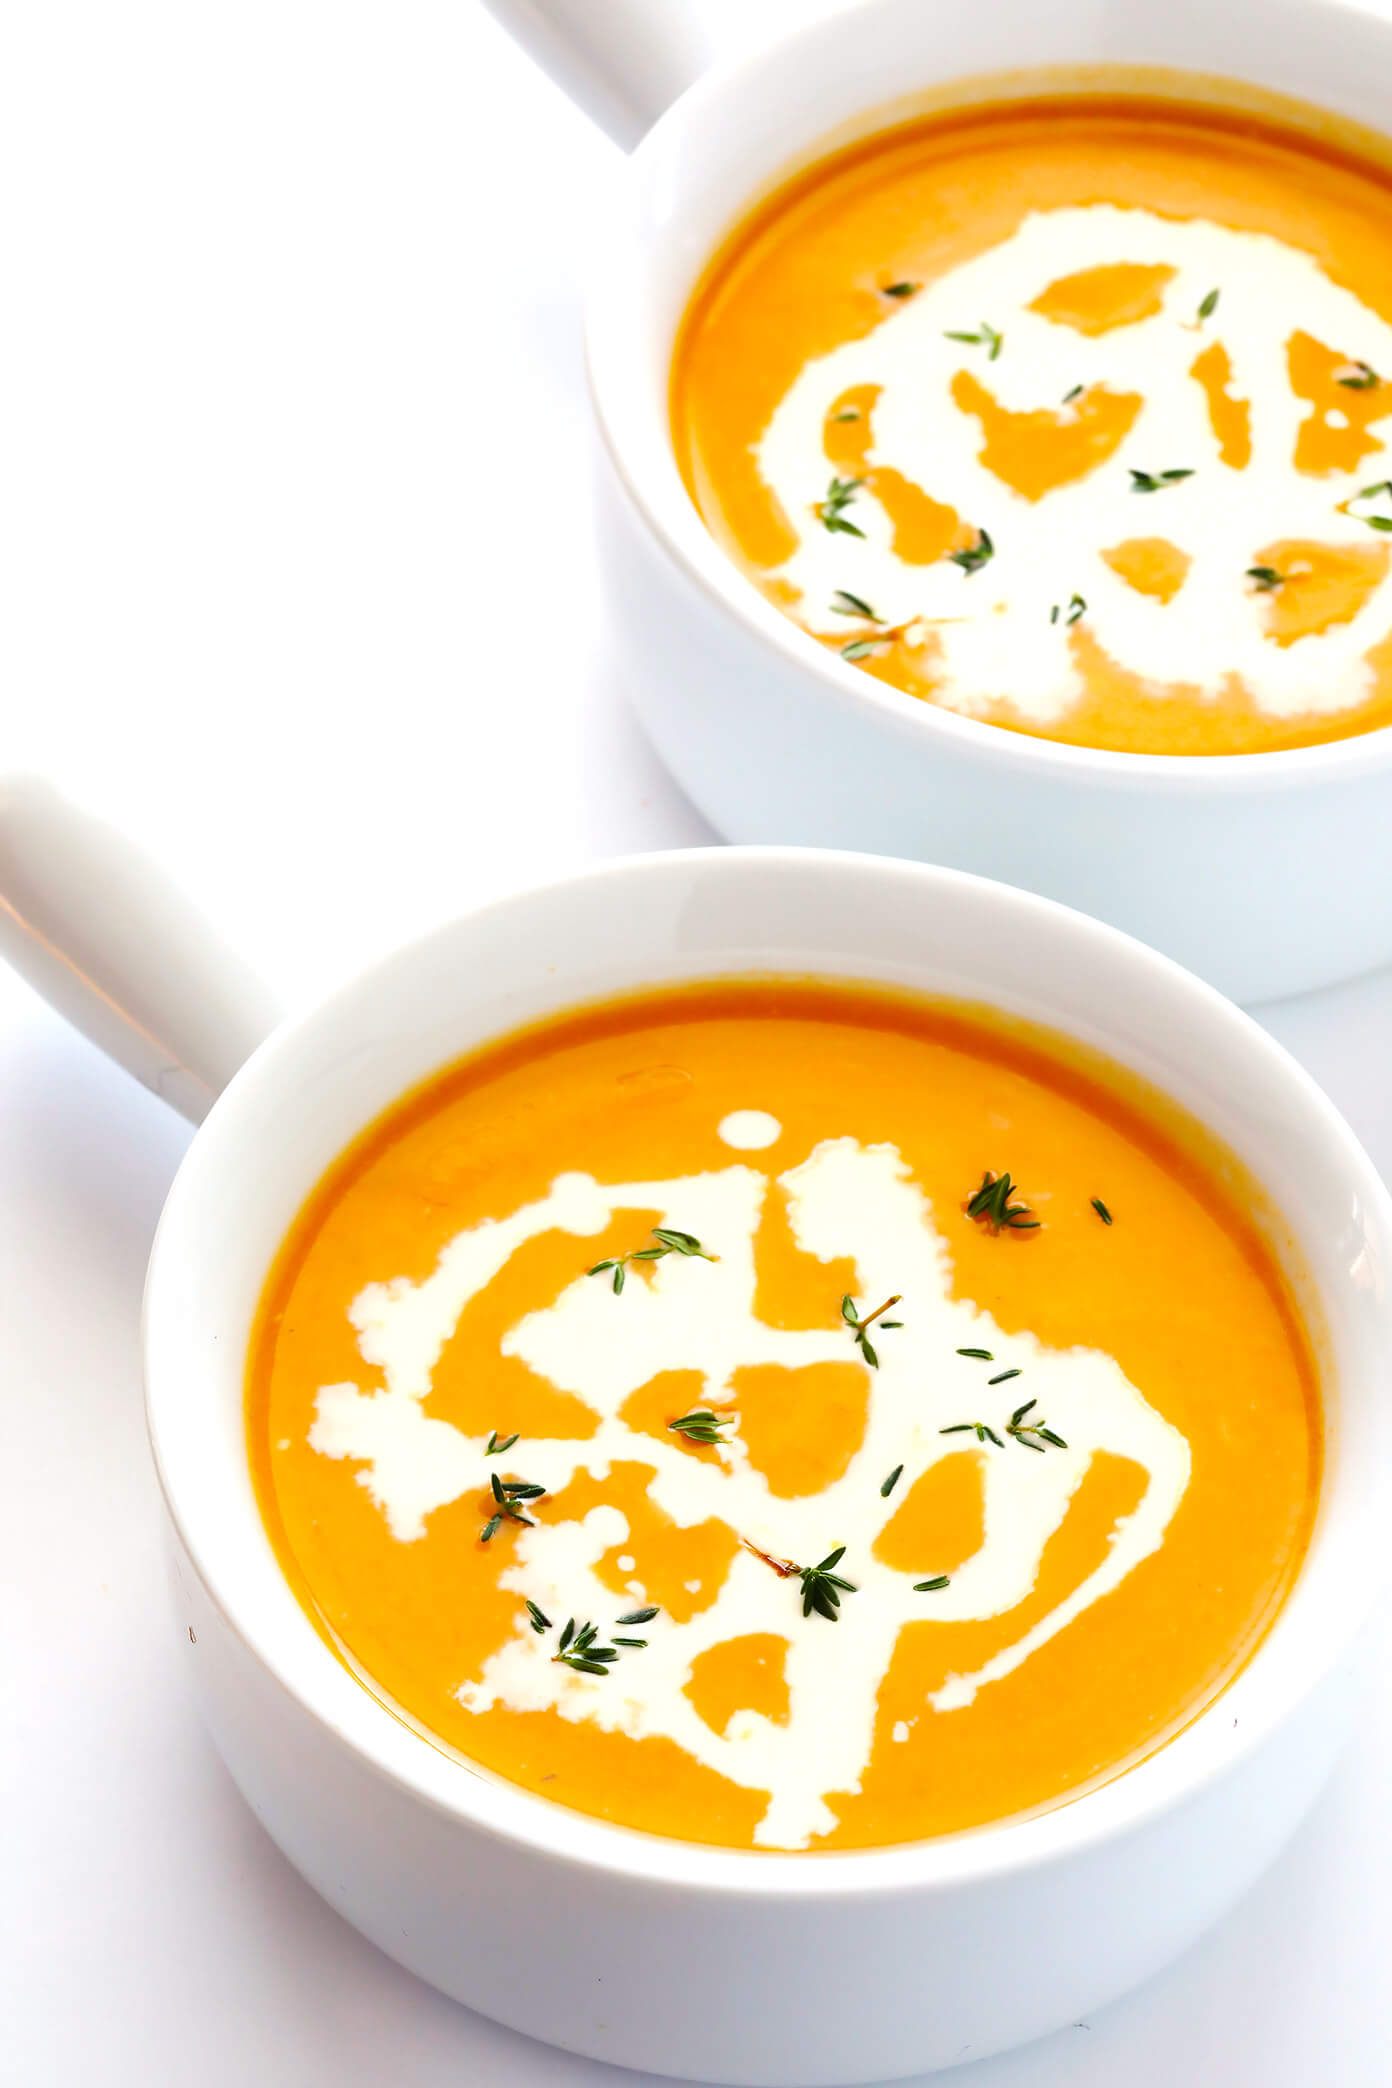 Seriously the BEST Instant Pot Butternut Squash Soup recipe! It's easy to make in about 30 minutes from start to finish, it's naturally gluten-free and vegetarian and vegan, and it's packed with feel-good veggies and flavors that everyone will love. My kind of fall comfort food!